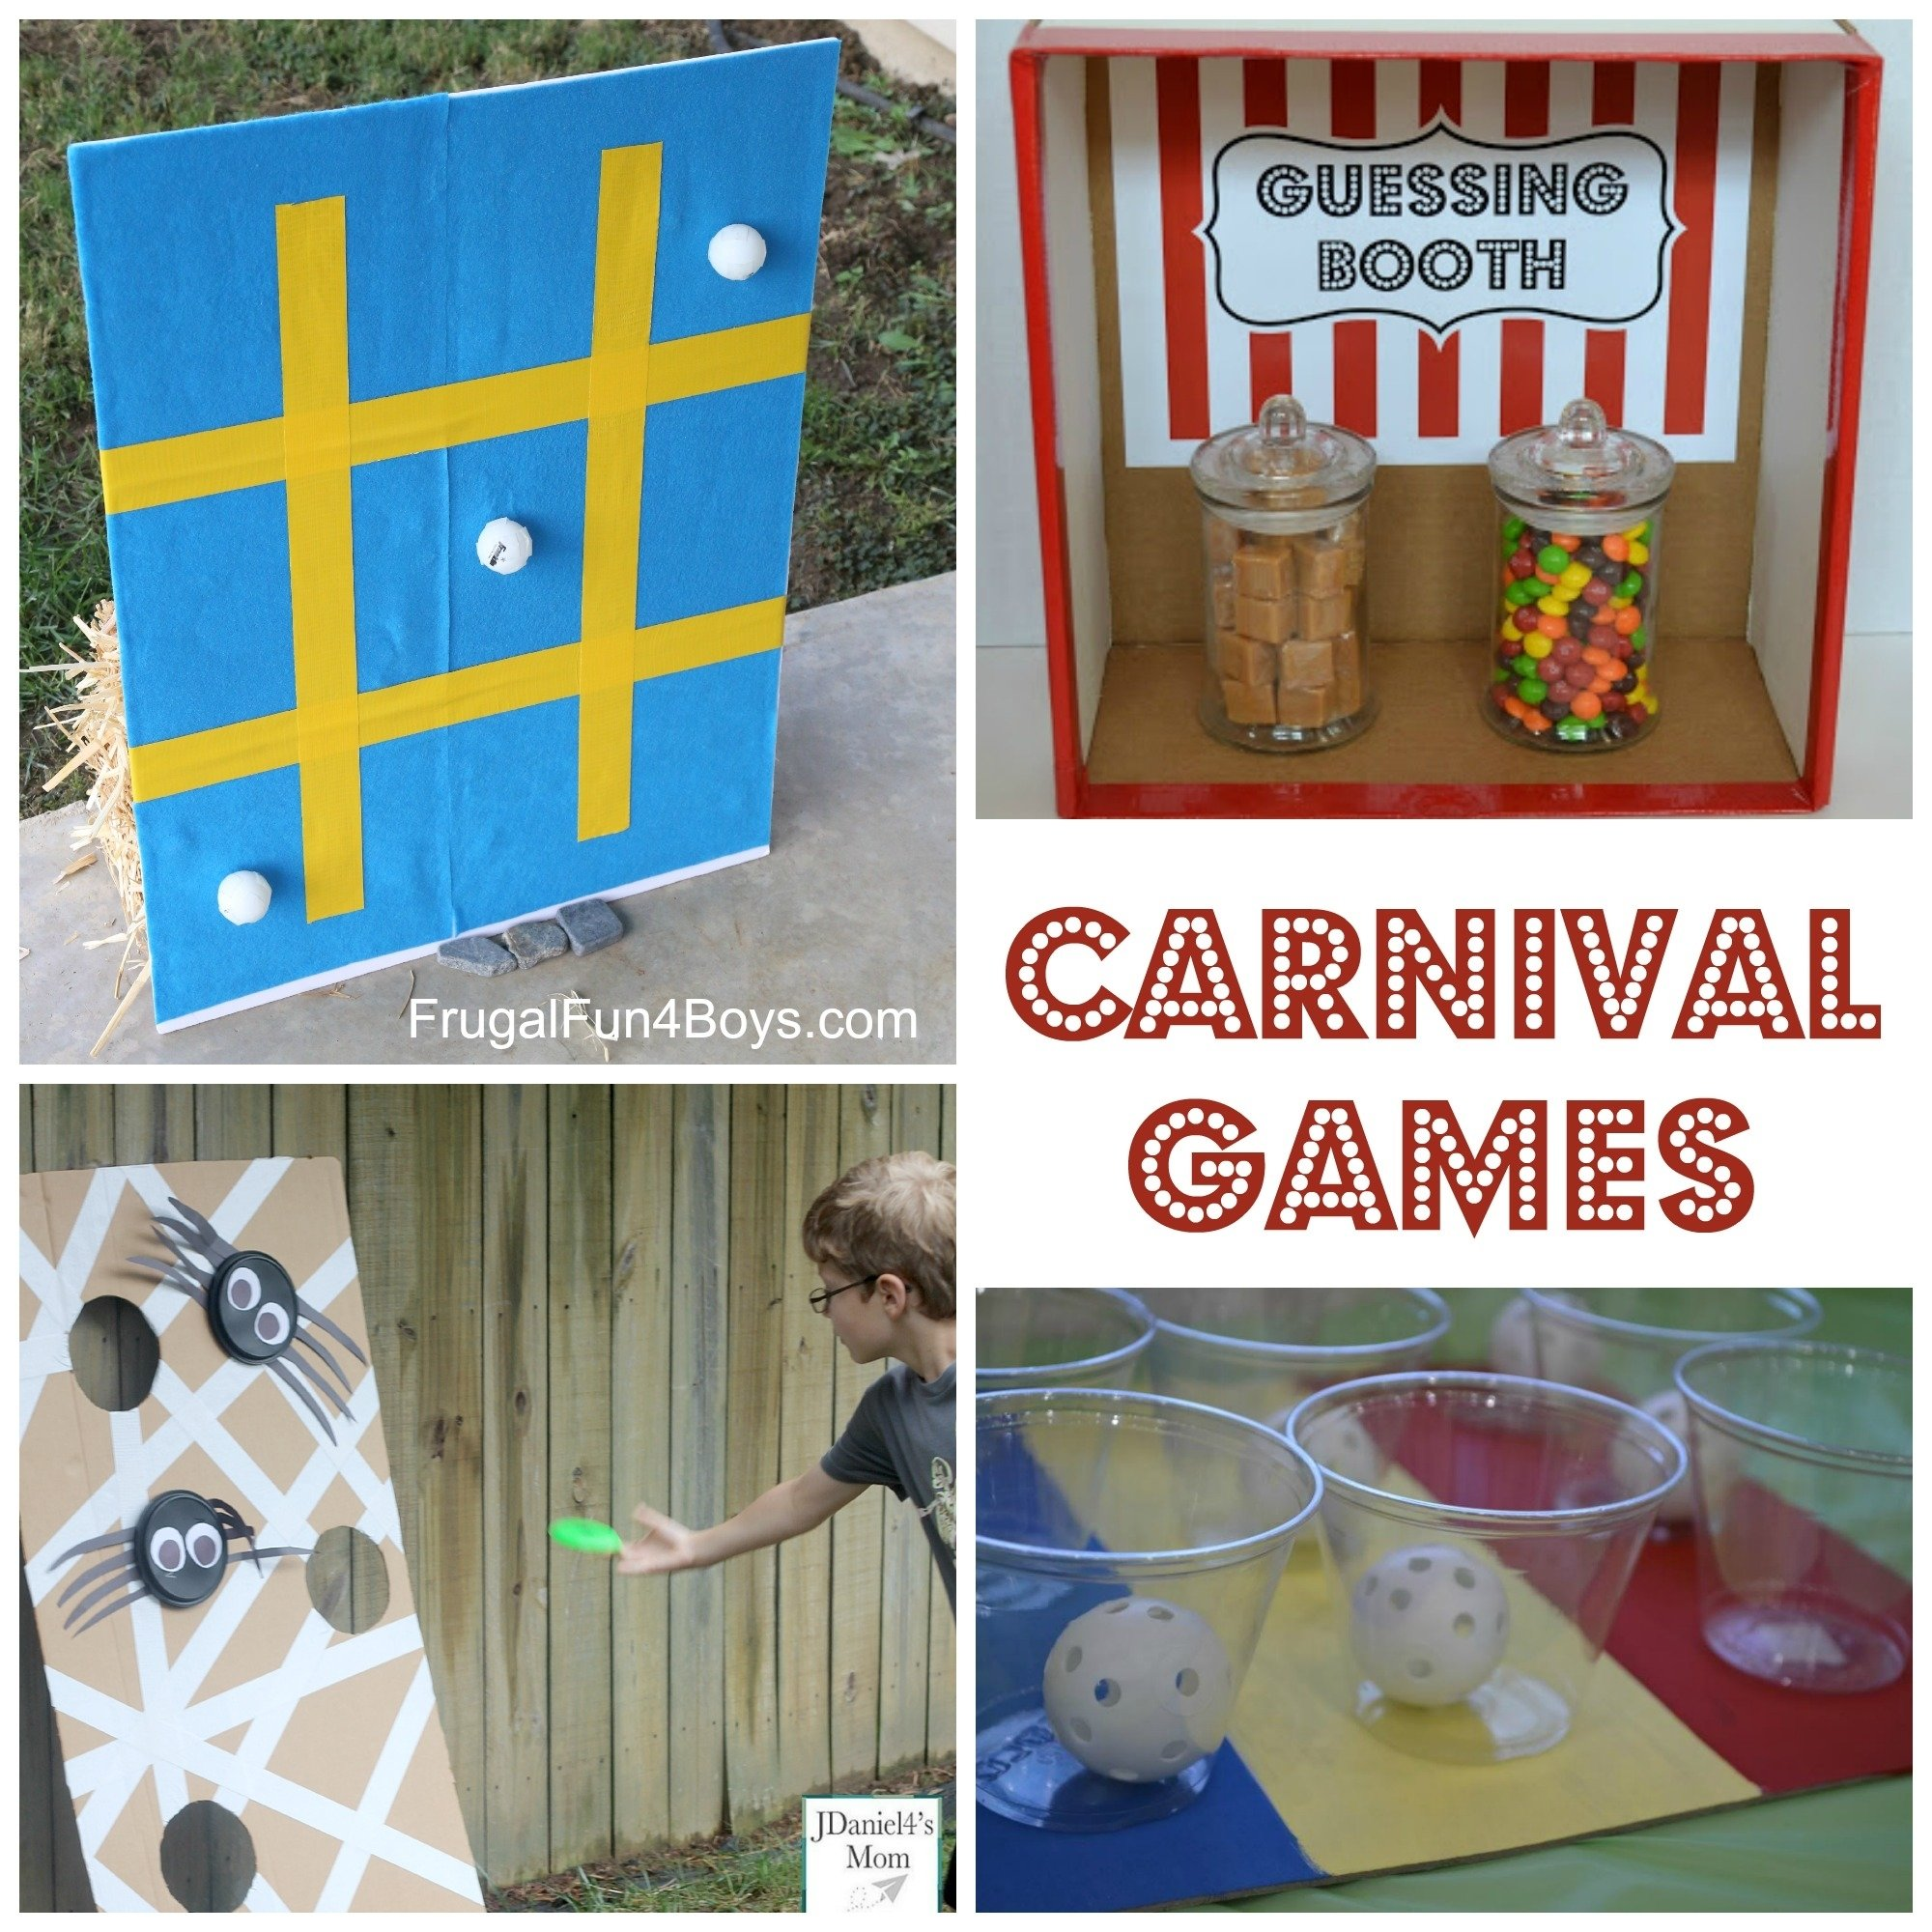 10 Fashionable Fun Game Ideas For Kids 25 simple carnival games for kids 1 2021